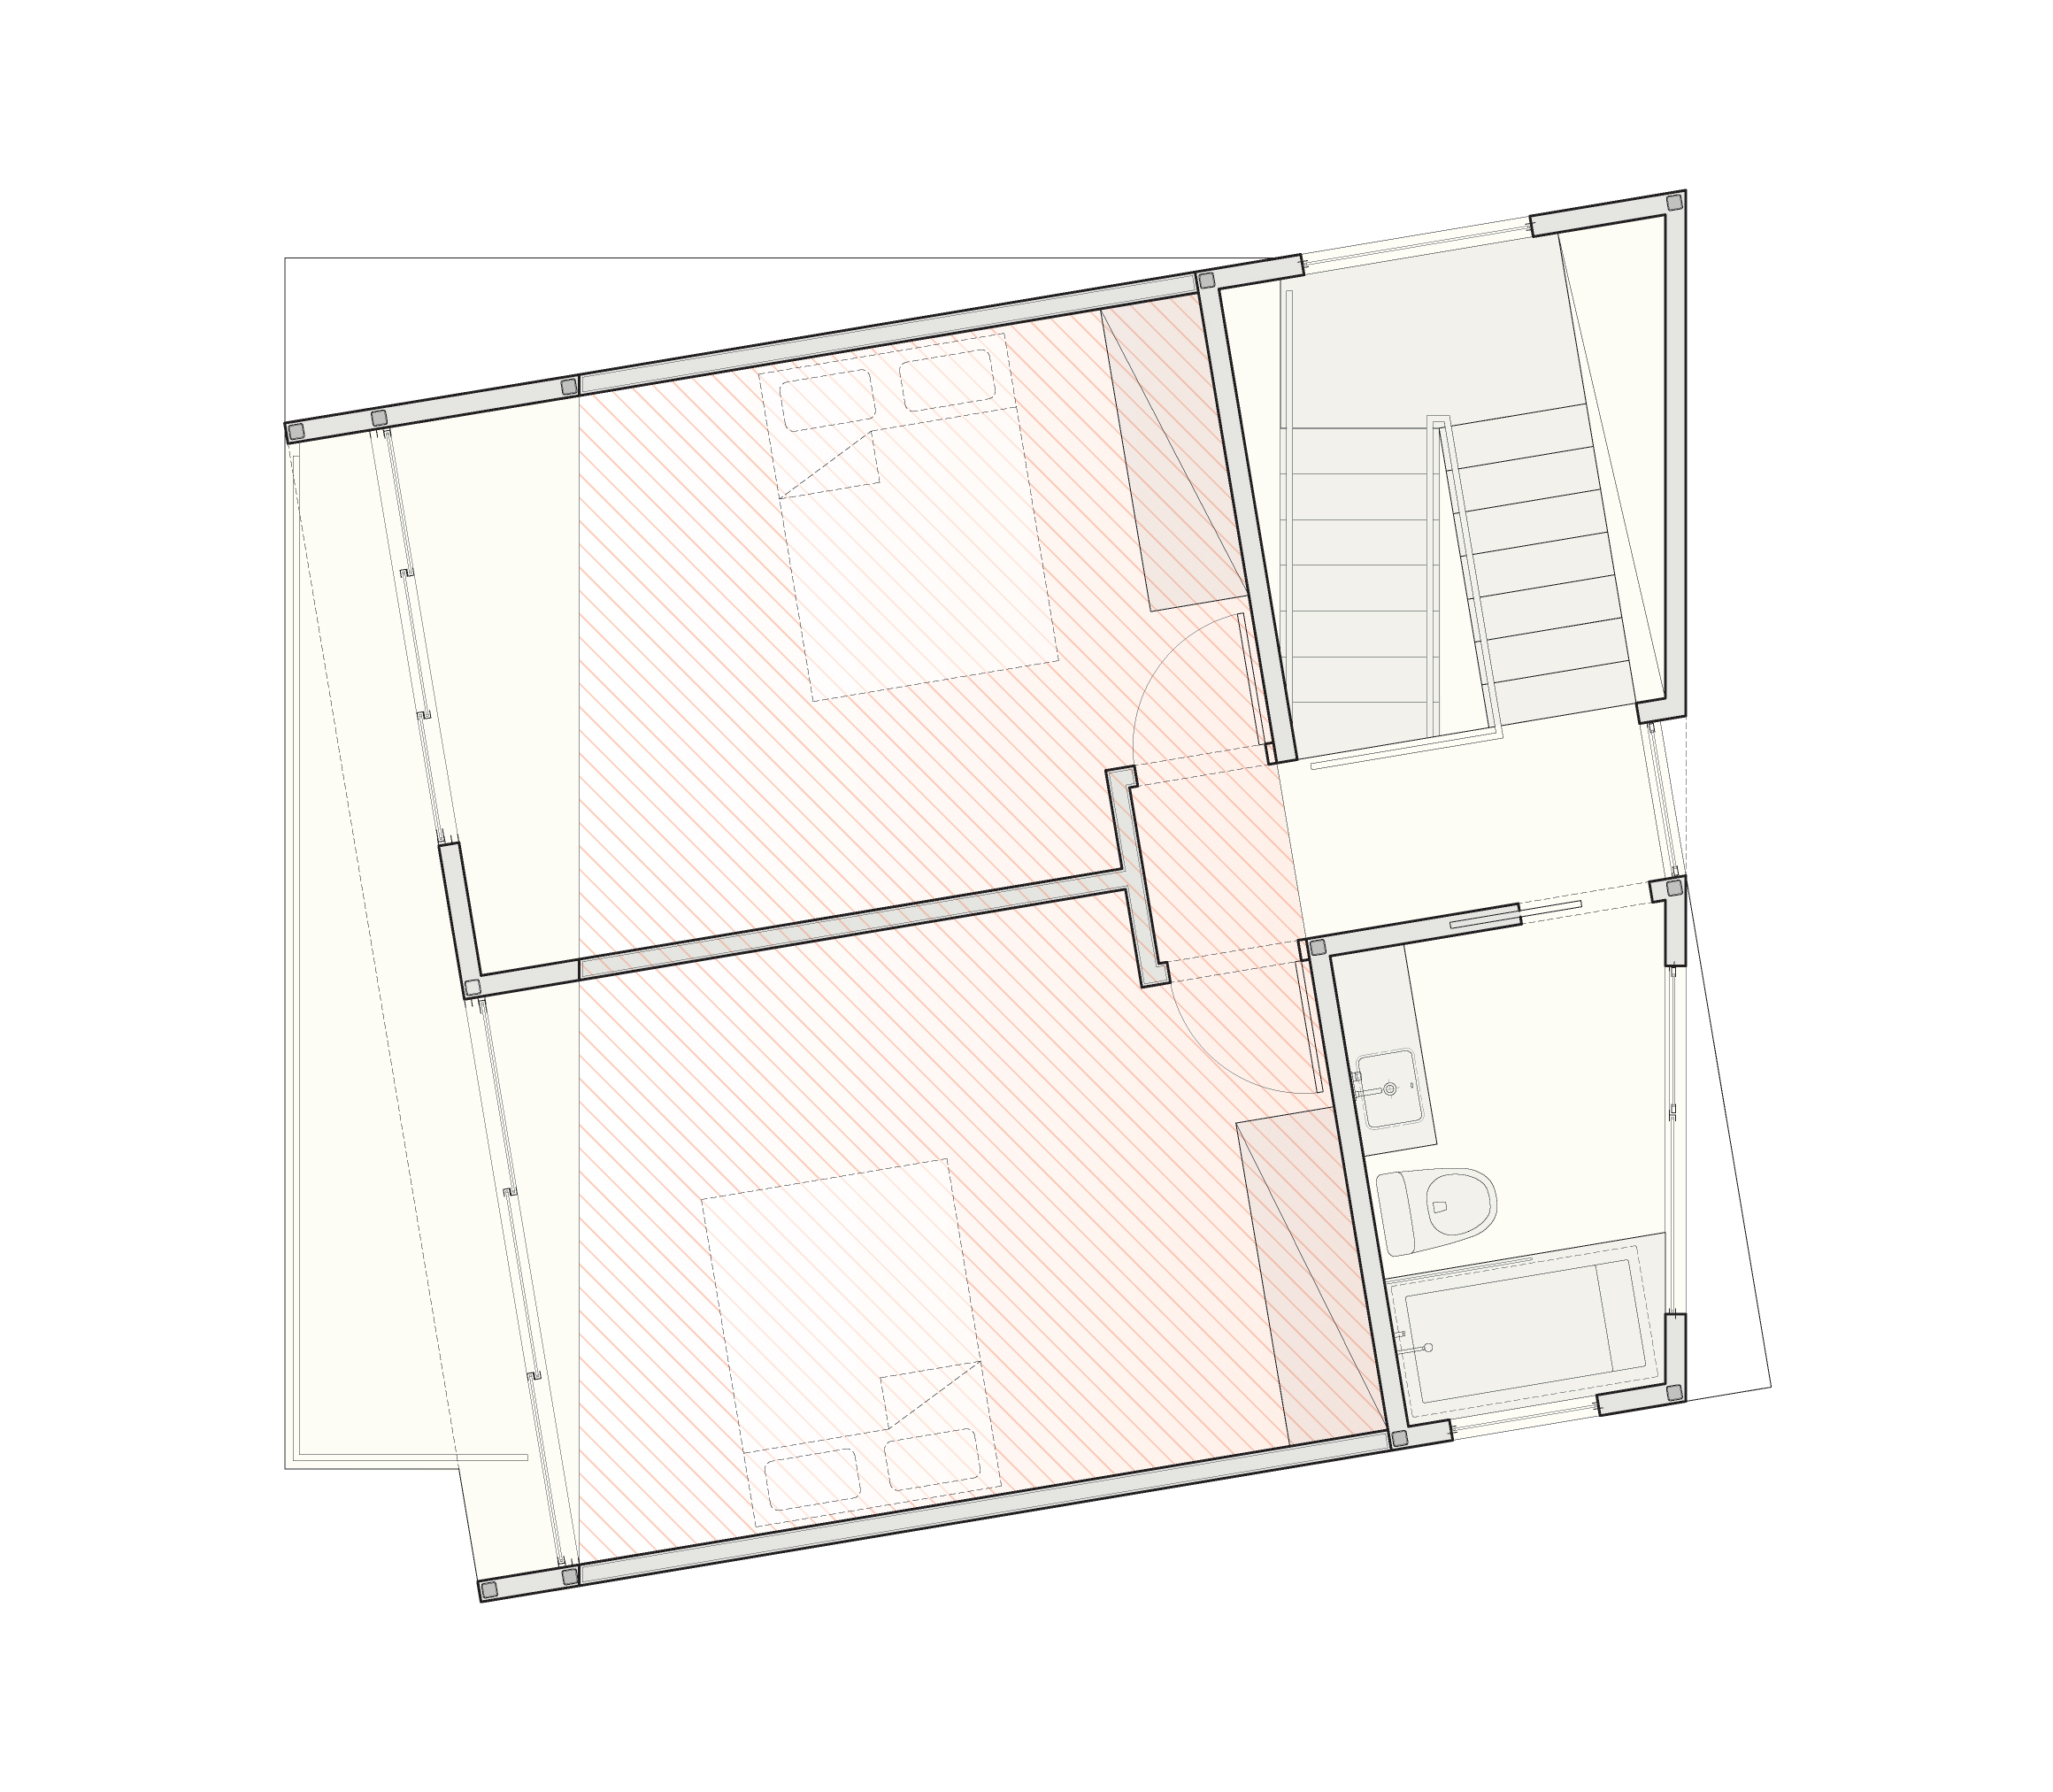 The second-floor plan of the two story, two bedroom scheme.